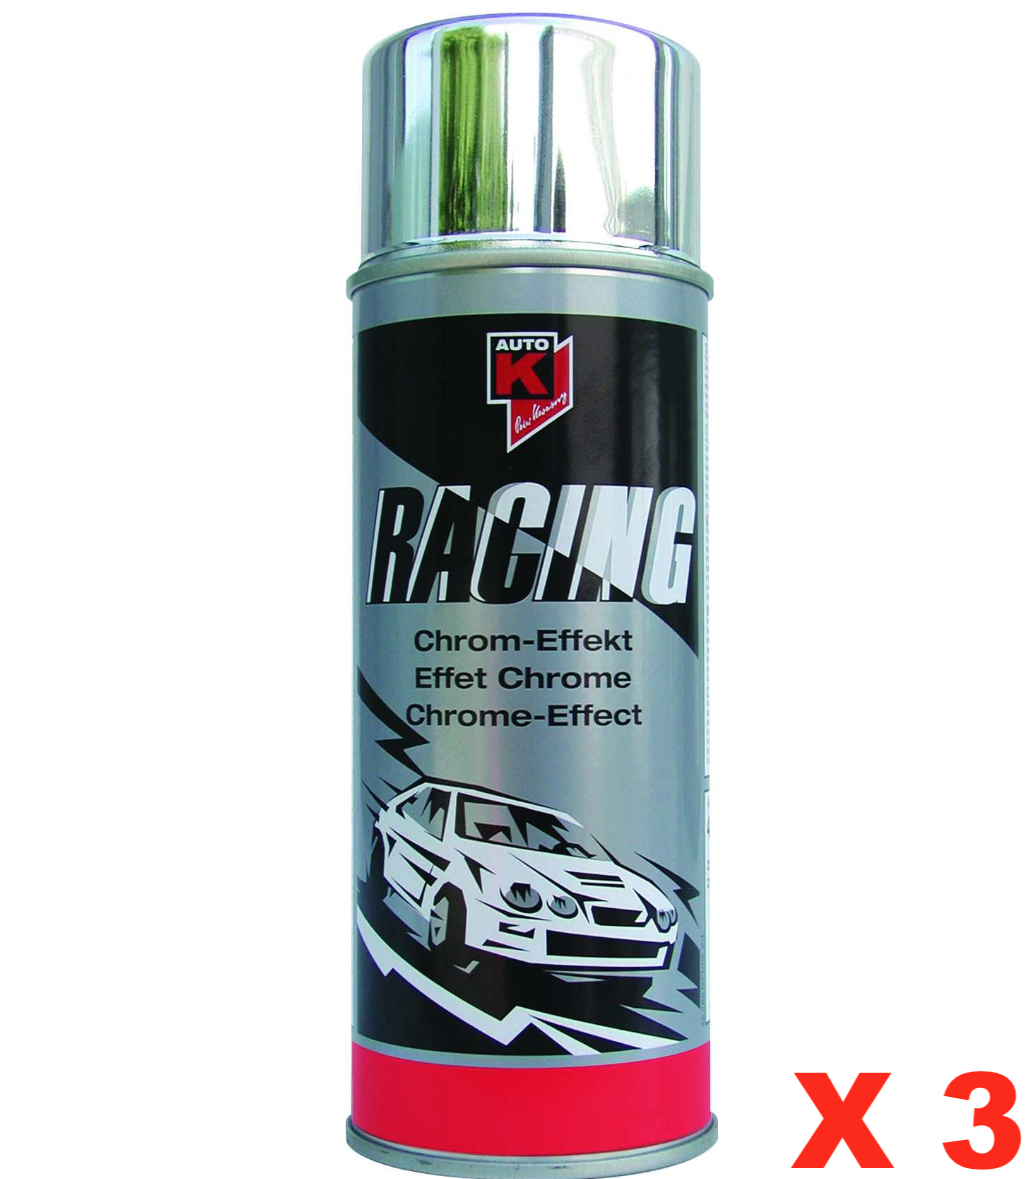 AUTO RACING CHROME-EFFECT 400 ML AEROSOL SPRAY CANS  PAINT COMASOUND KARTEL CAR MOTORBIKE